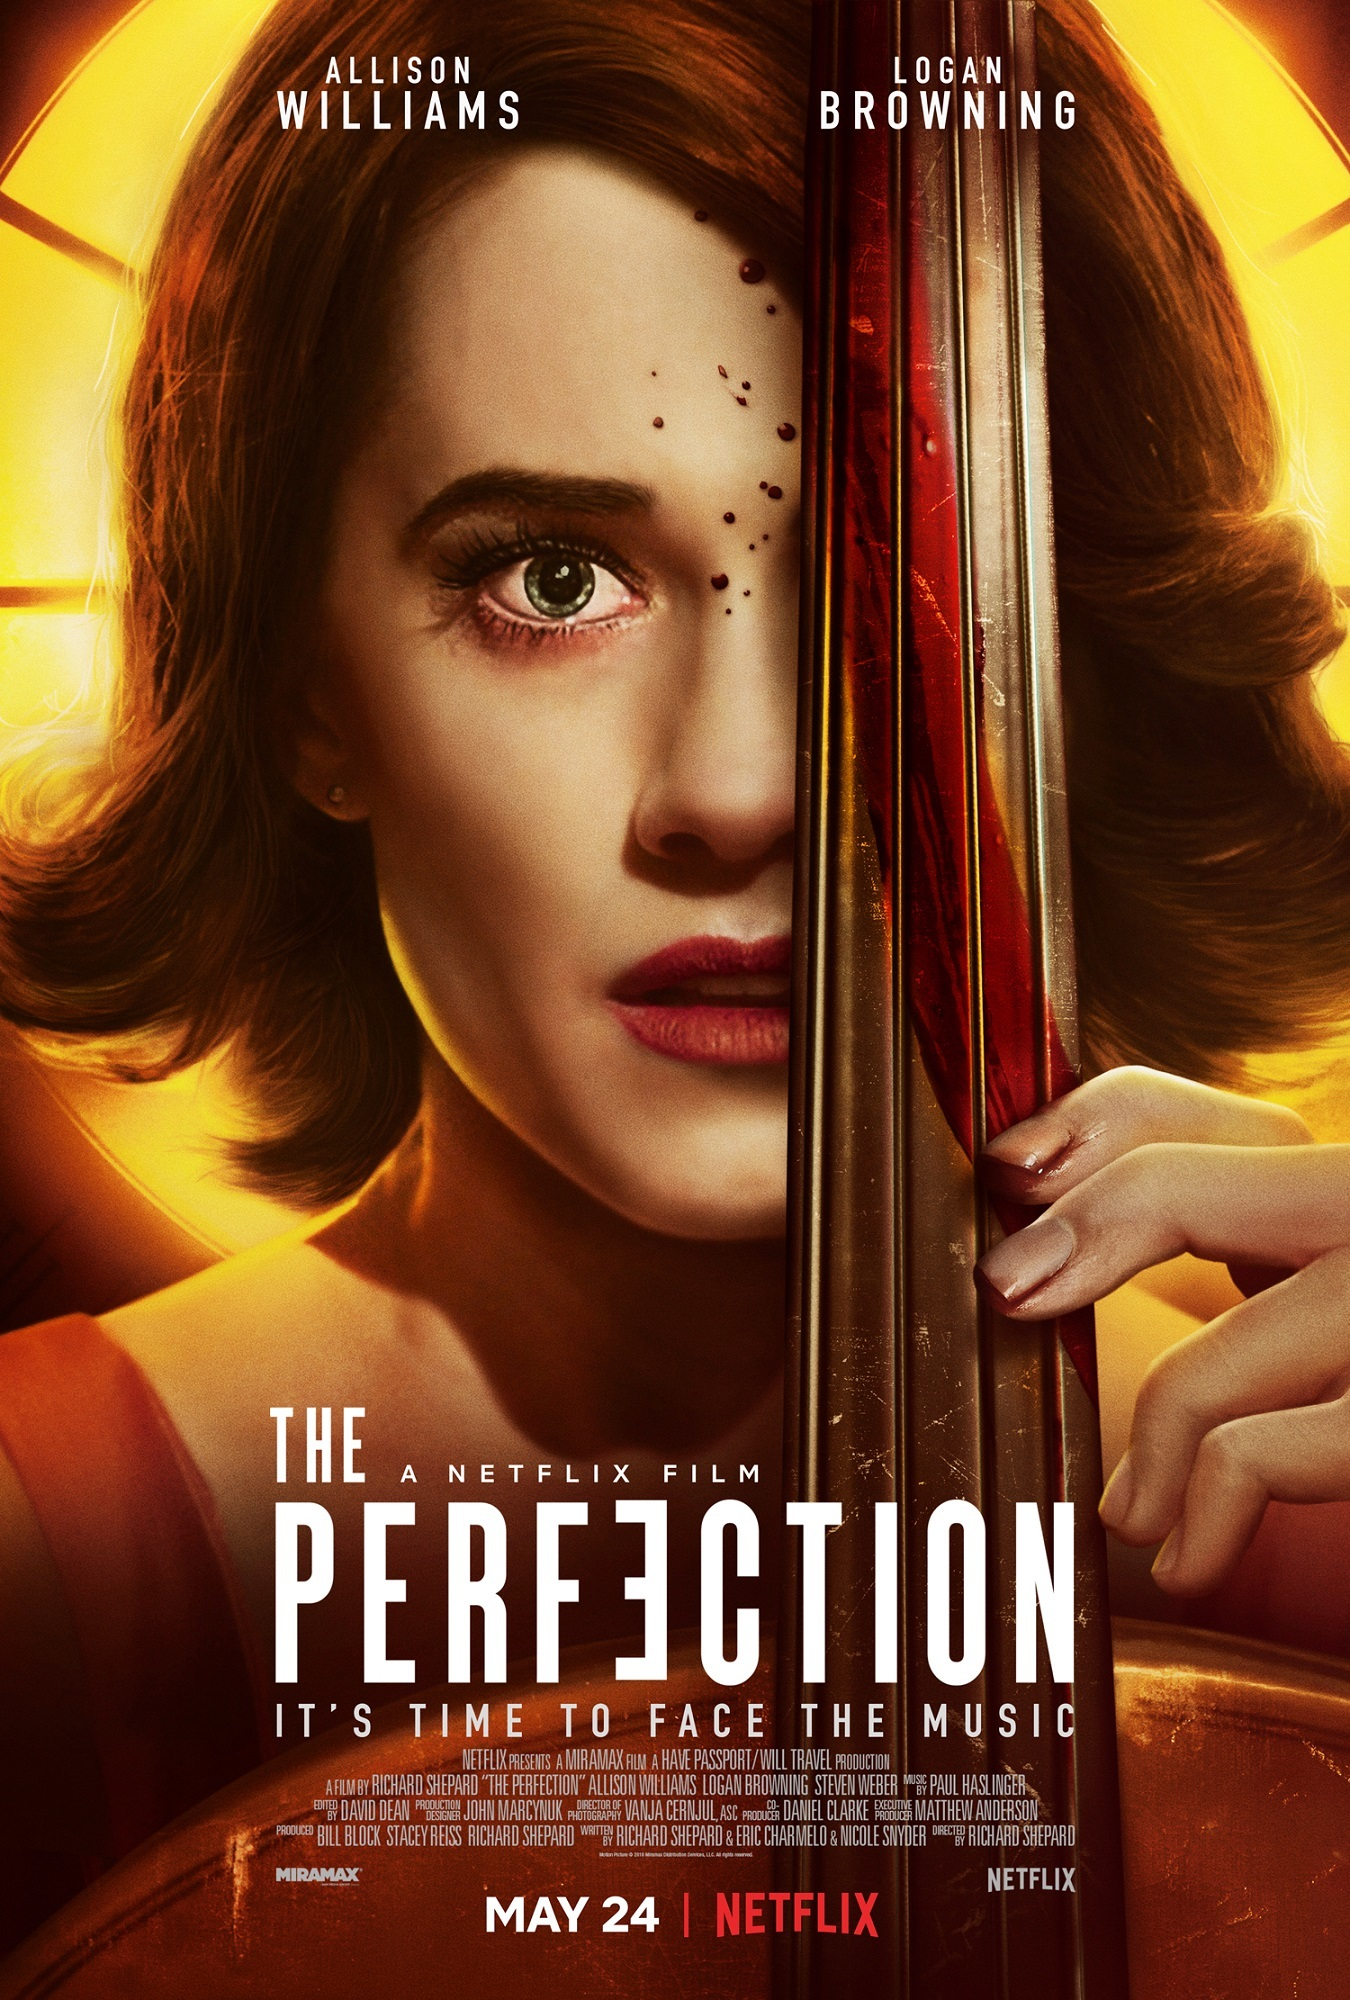 """Allison Williams in 2019's """"The Perfection."""""""